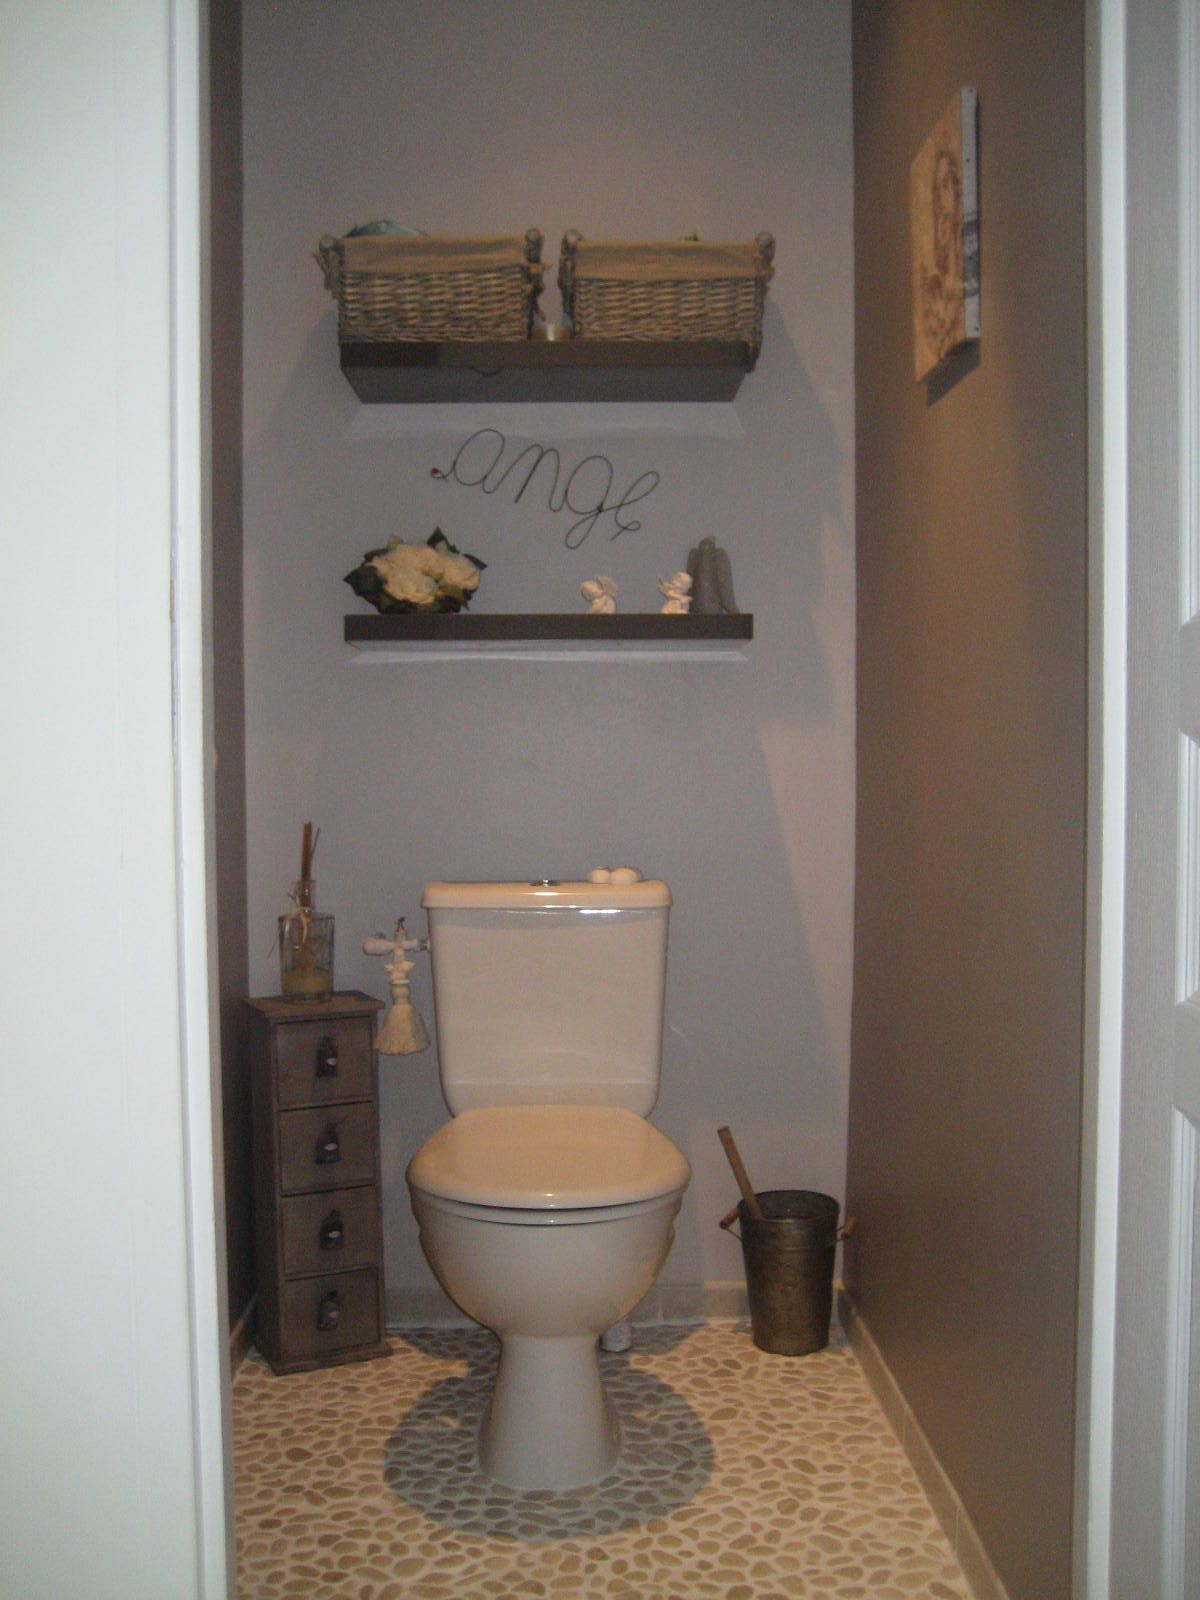 Toilette deco google search nouvelle maison - Idee deco wc zen ...